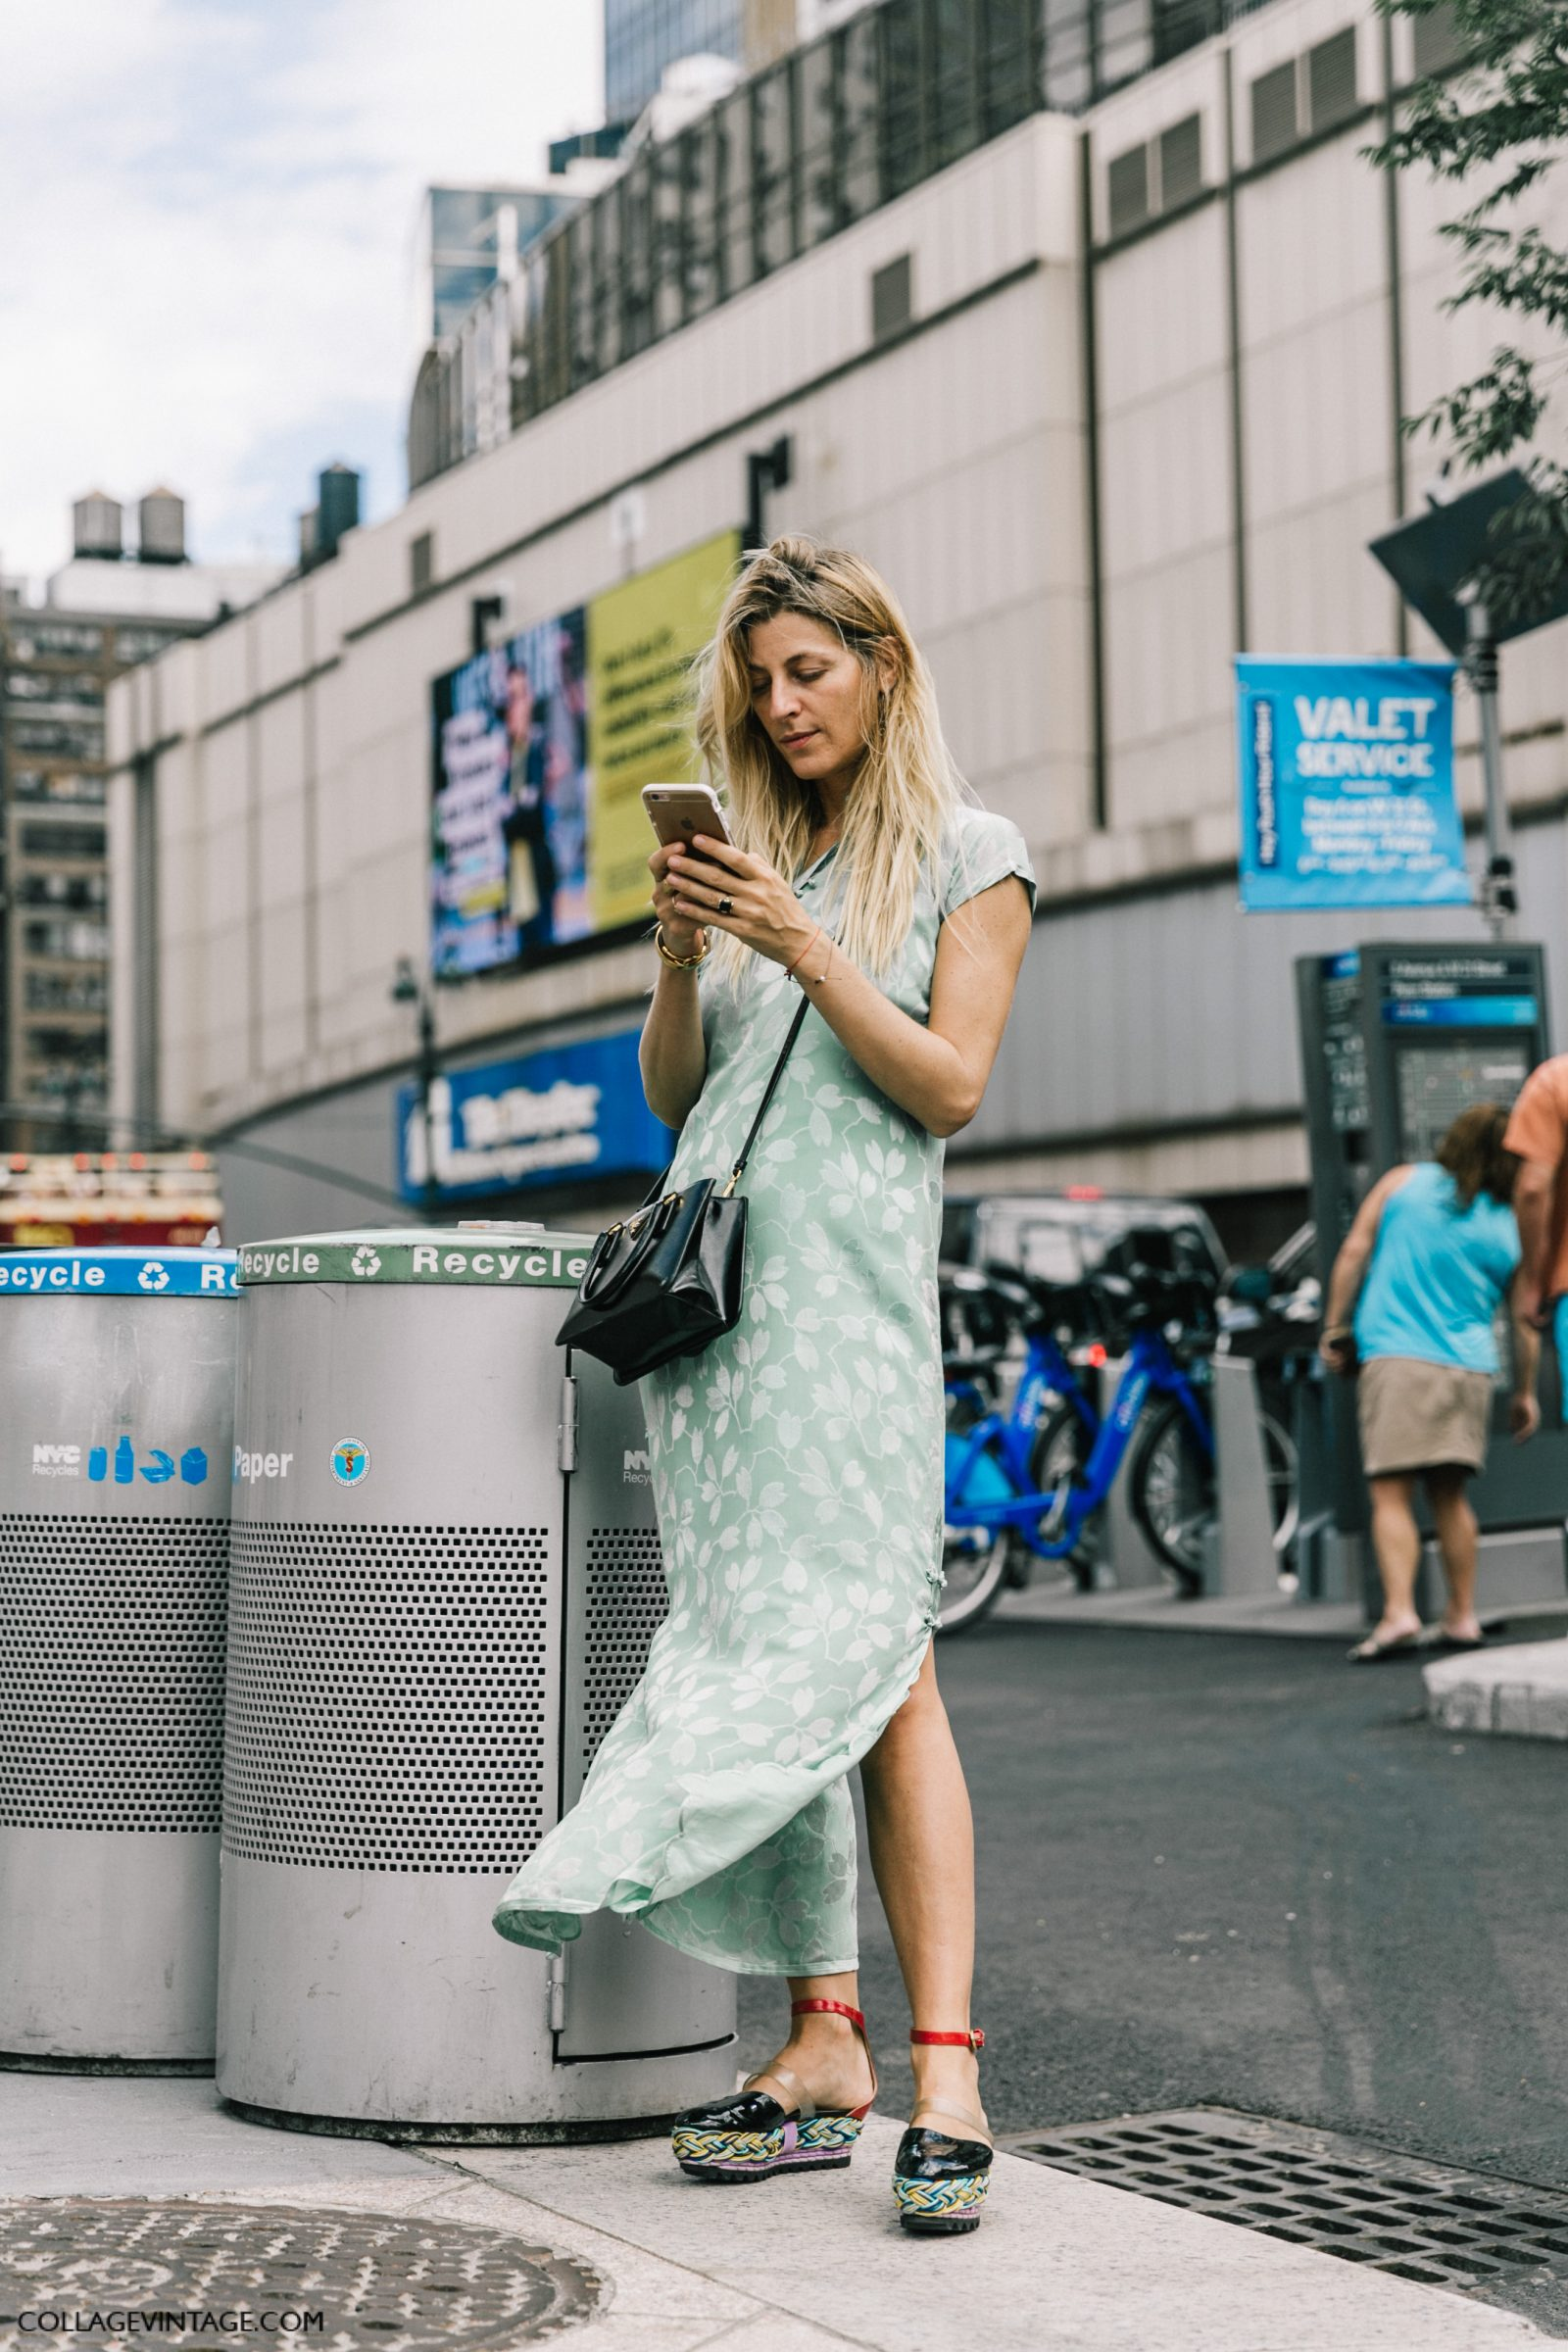 nyfw-new_york_fashion_week_ss17-street_style-outfits-collage_vintage-vintage-tome-156